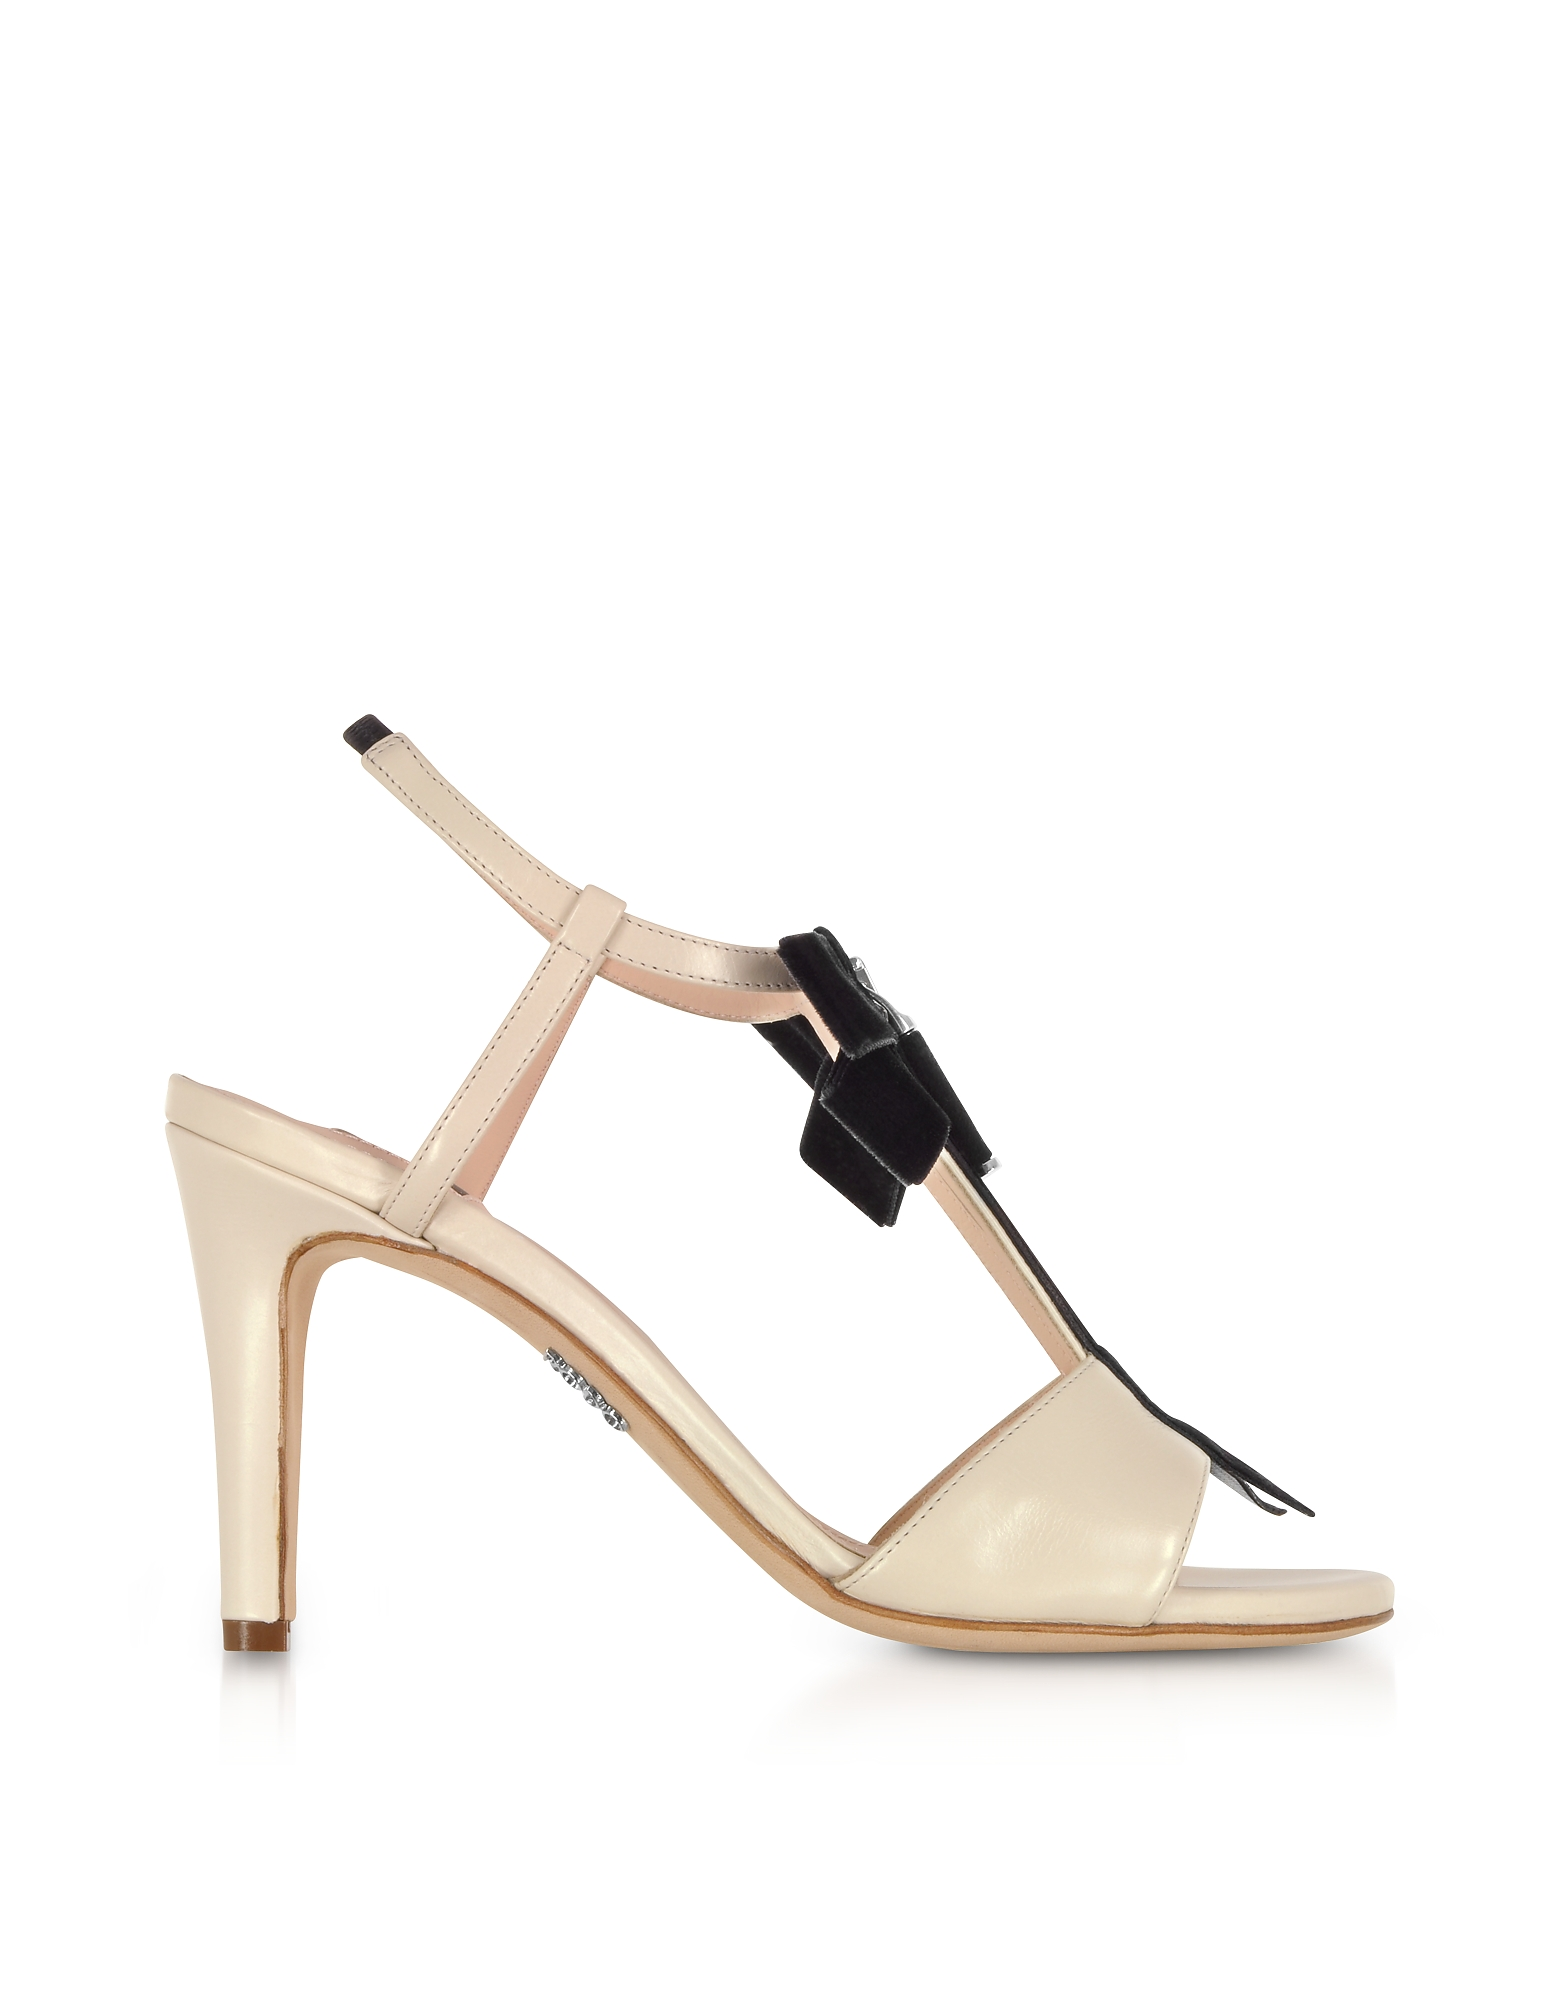 Rodo Shoes, Ivory Leather Zip Sandals w/Velvet Bow